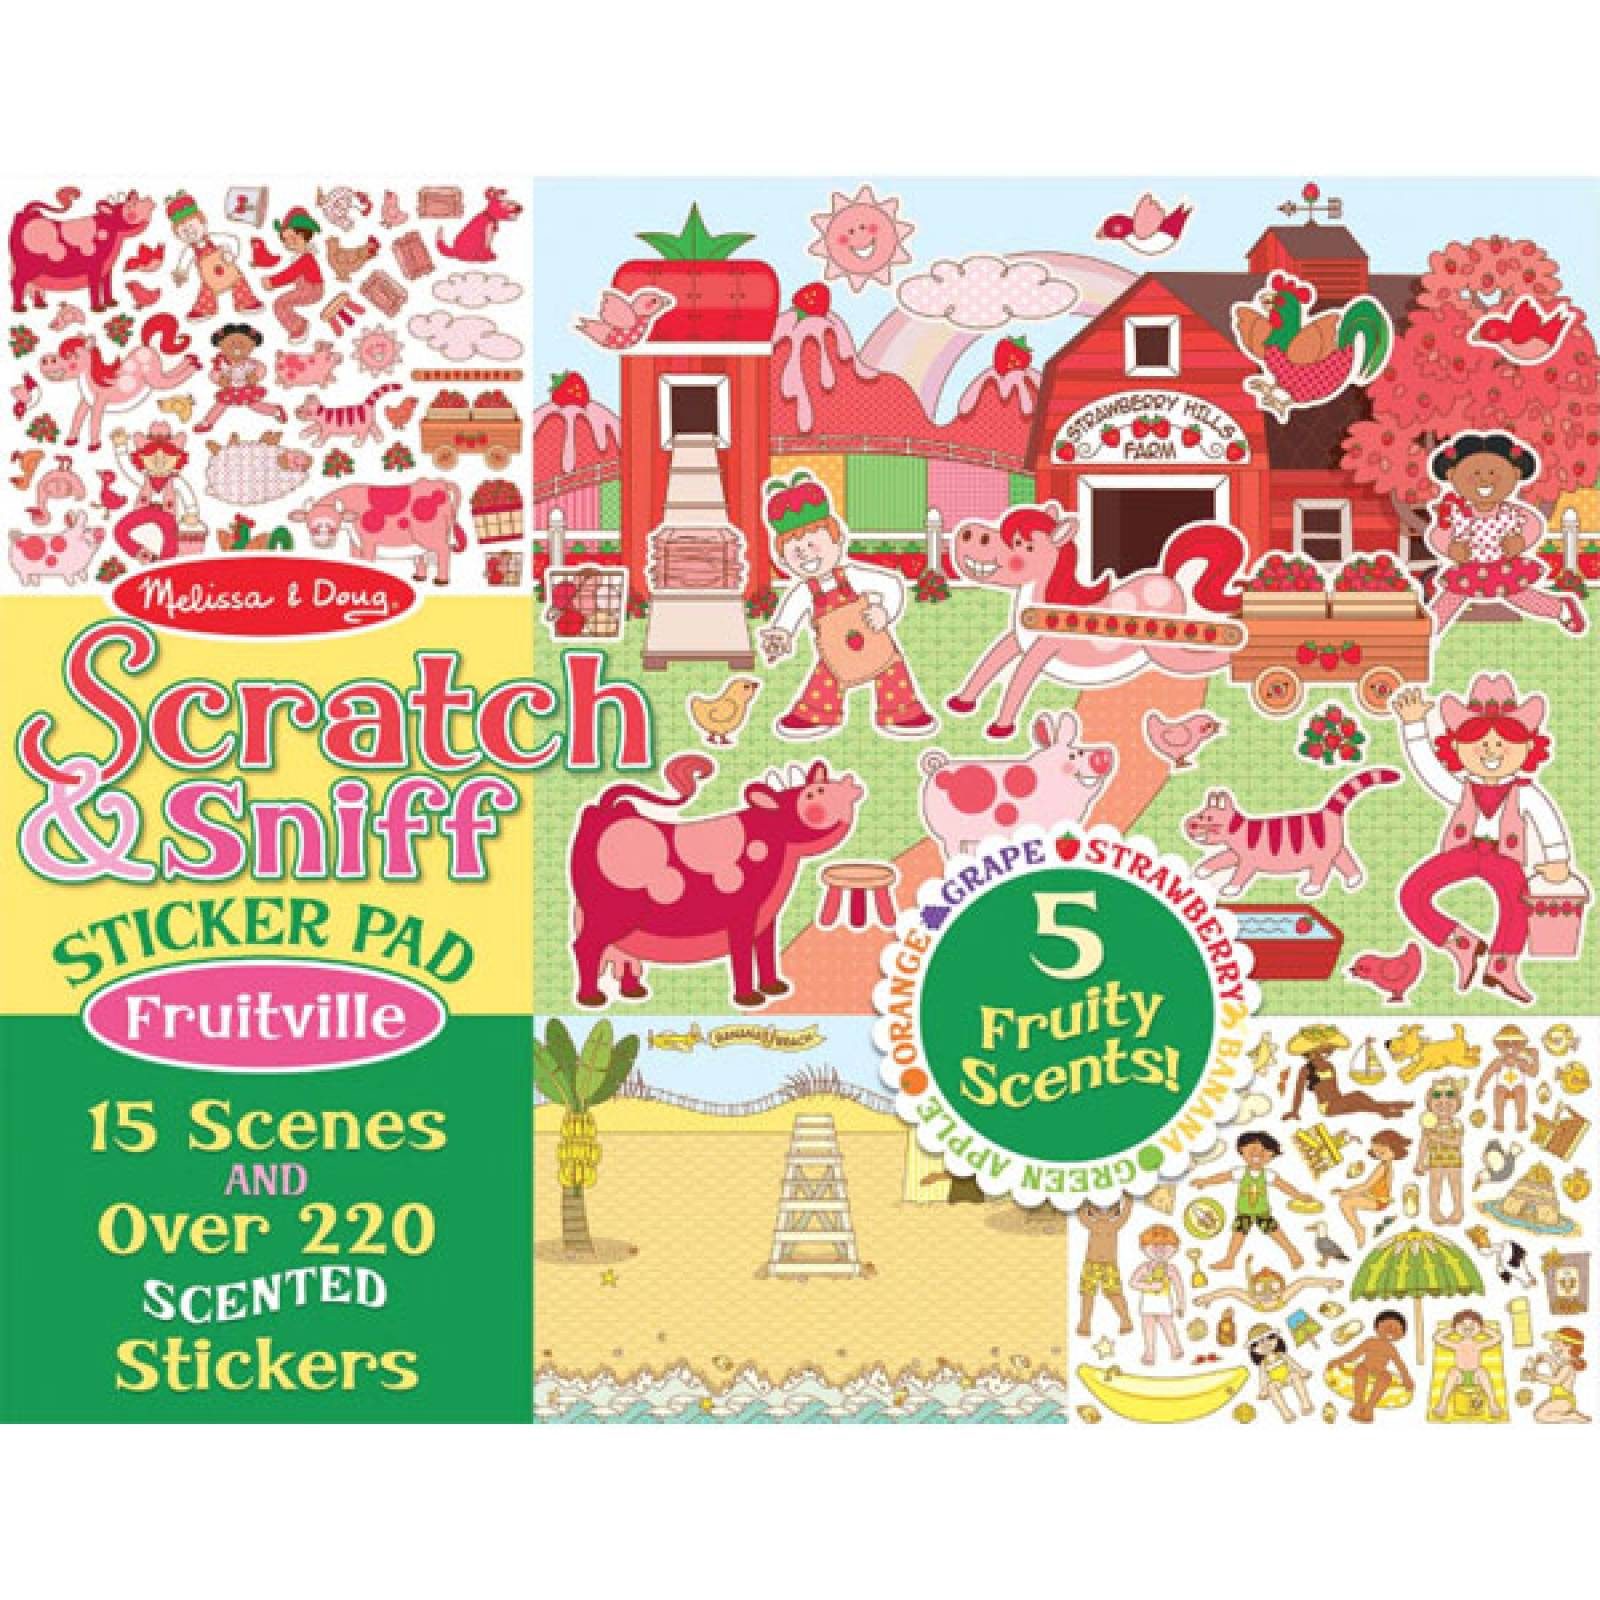 Fruitville Scratch And Sniff Sticker Pad By Melissa & Doug thumbnails